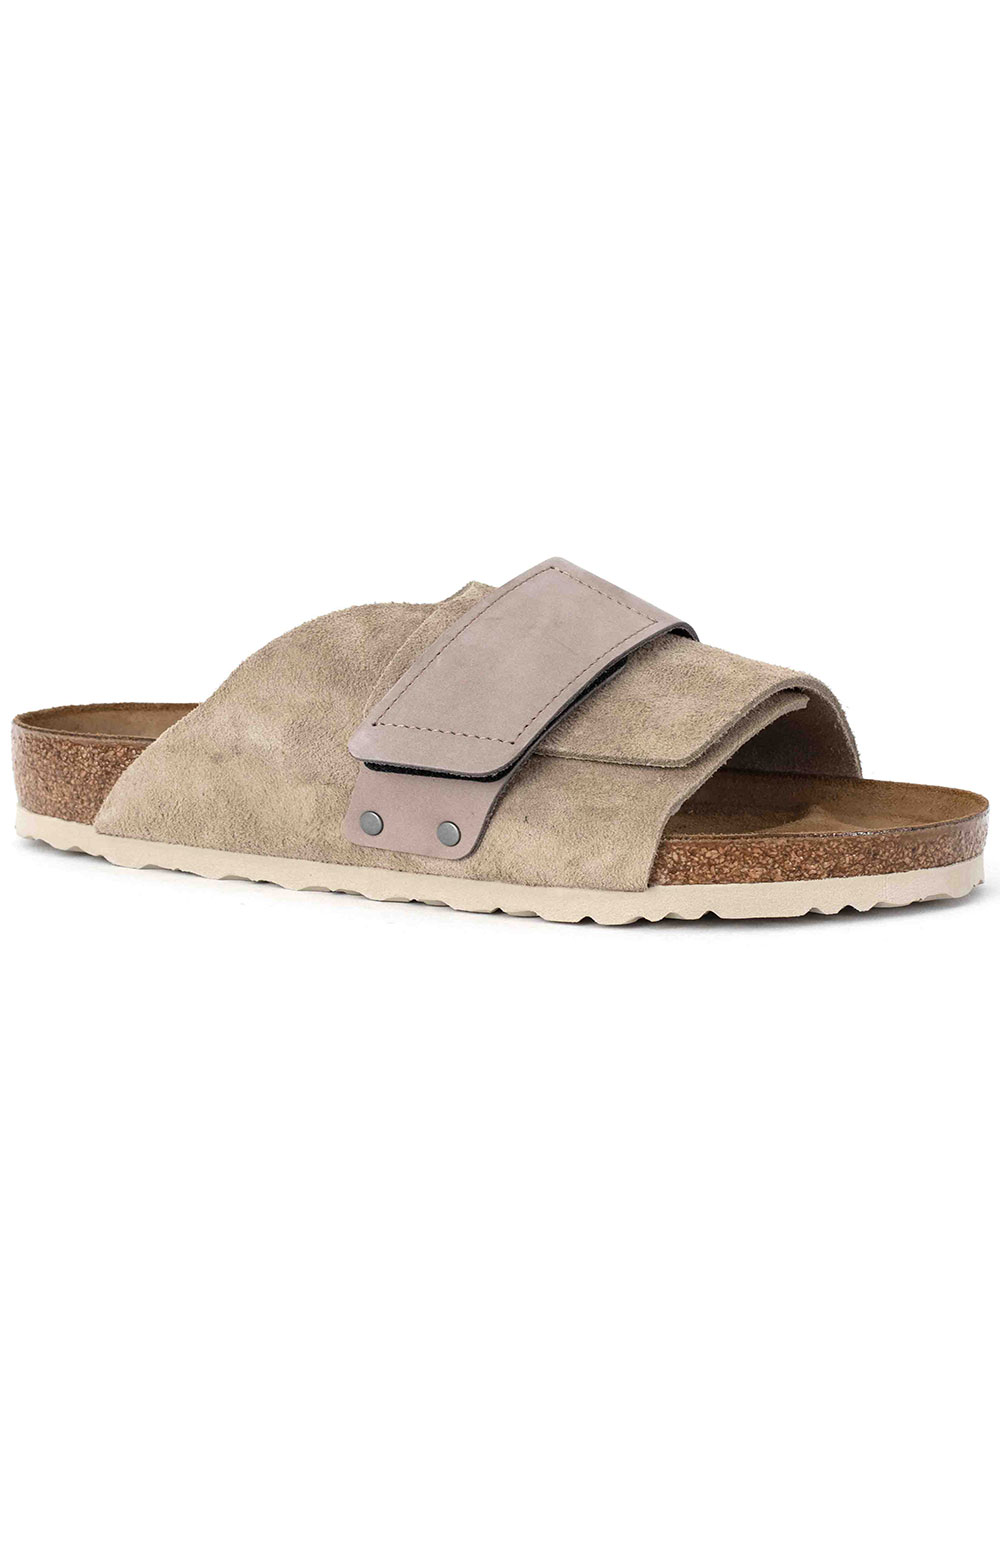 (1015572) Kyoto Sandals - Taupe  2